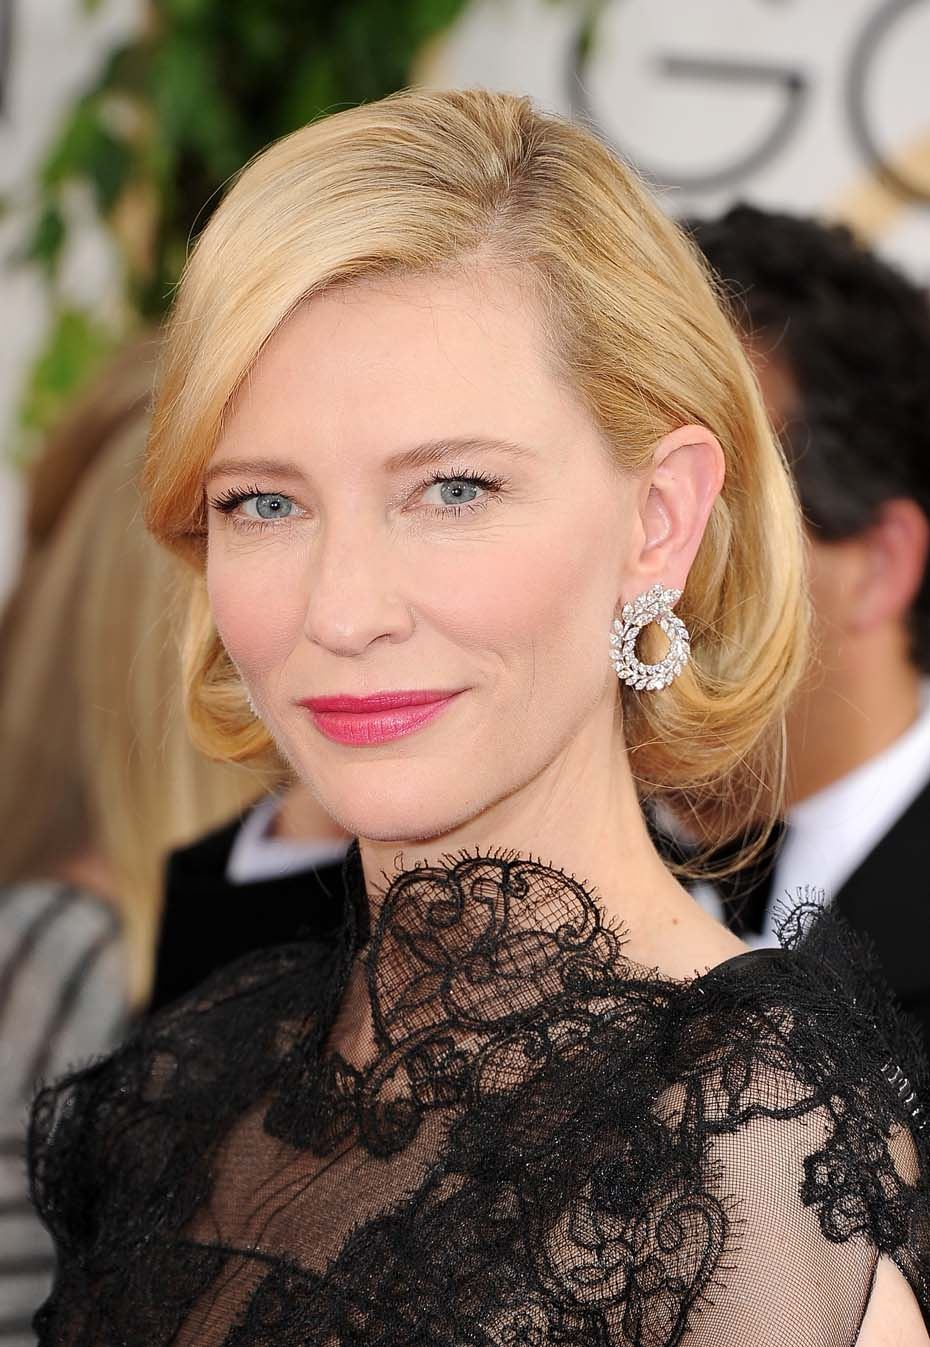 Cate Blanchett wears Chopard Haute Joaillerie earrings made of diamonds sourced from a certified member of the Responsible Jewelry Council and FairMined 18K white gold.